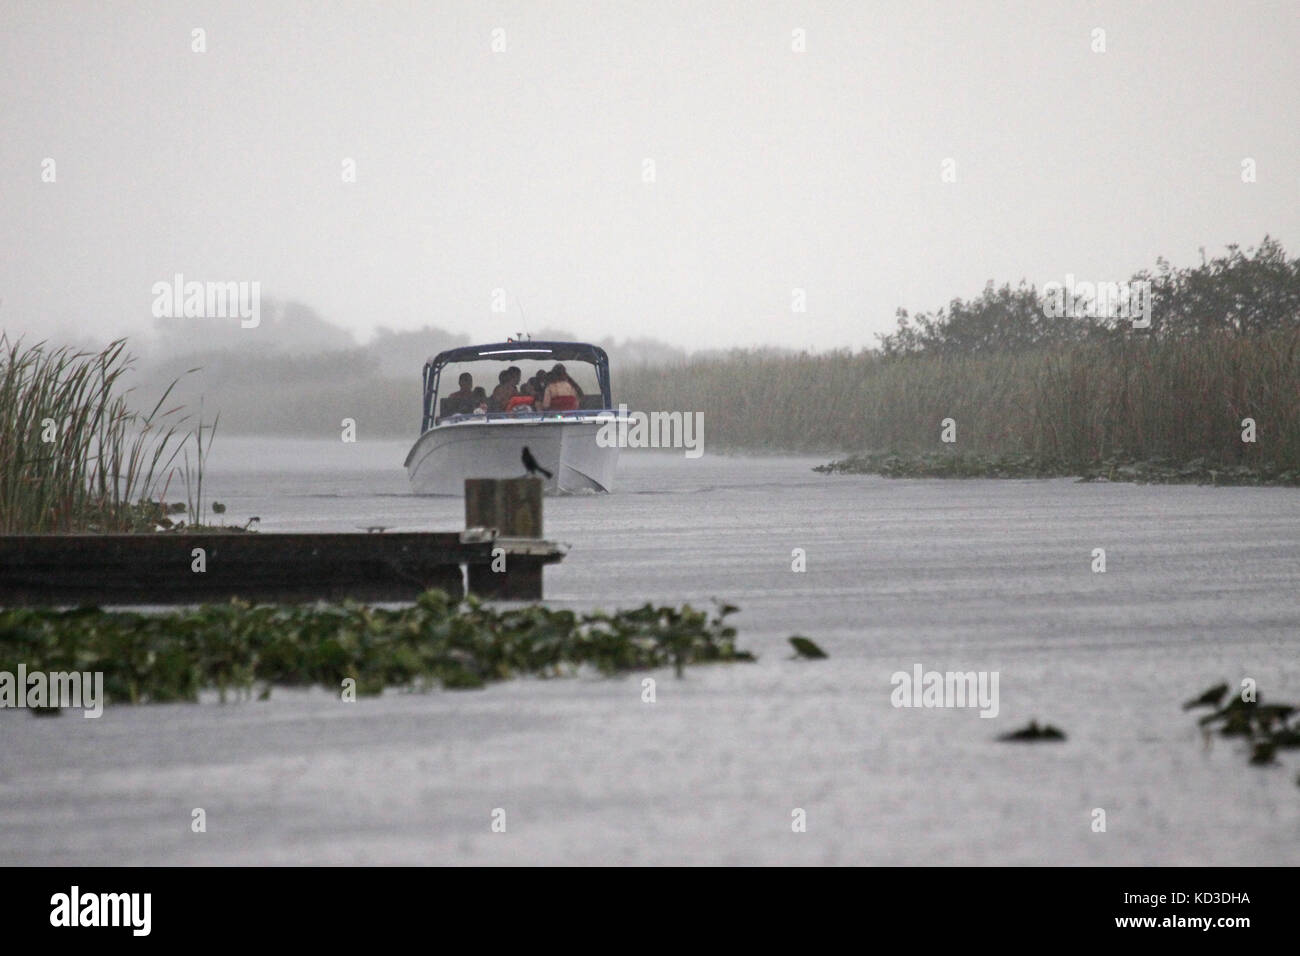 A family of pleasure boaters return home to the dock at Everglades Holiday Park in Ft. Lauderdale on a rainy weekend - Stock Image